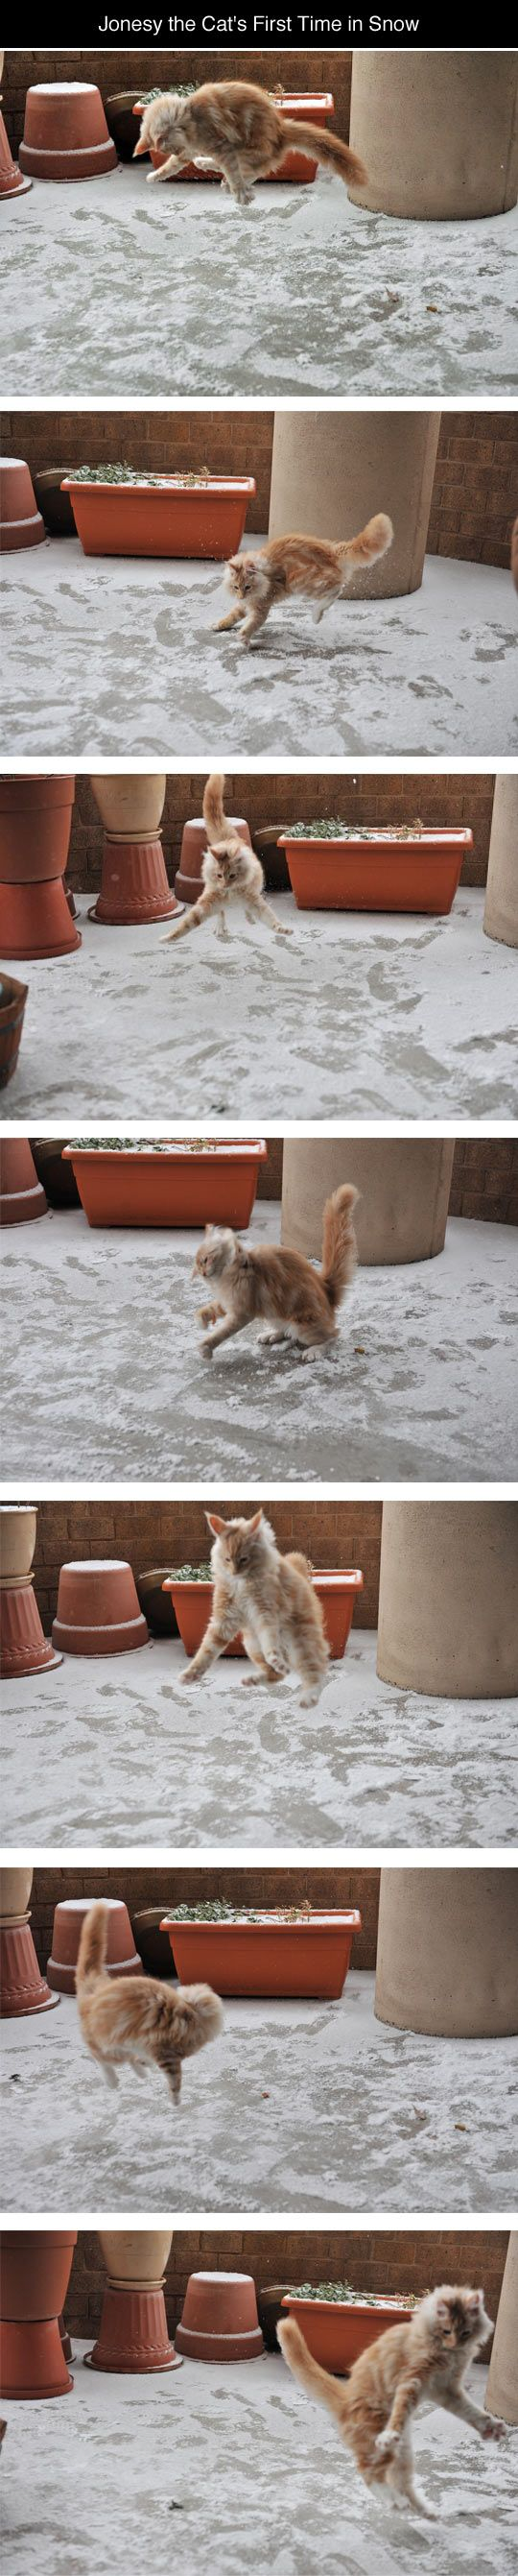 A cat's first encounter with snow